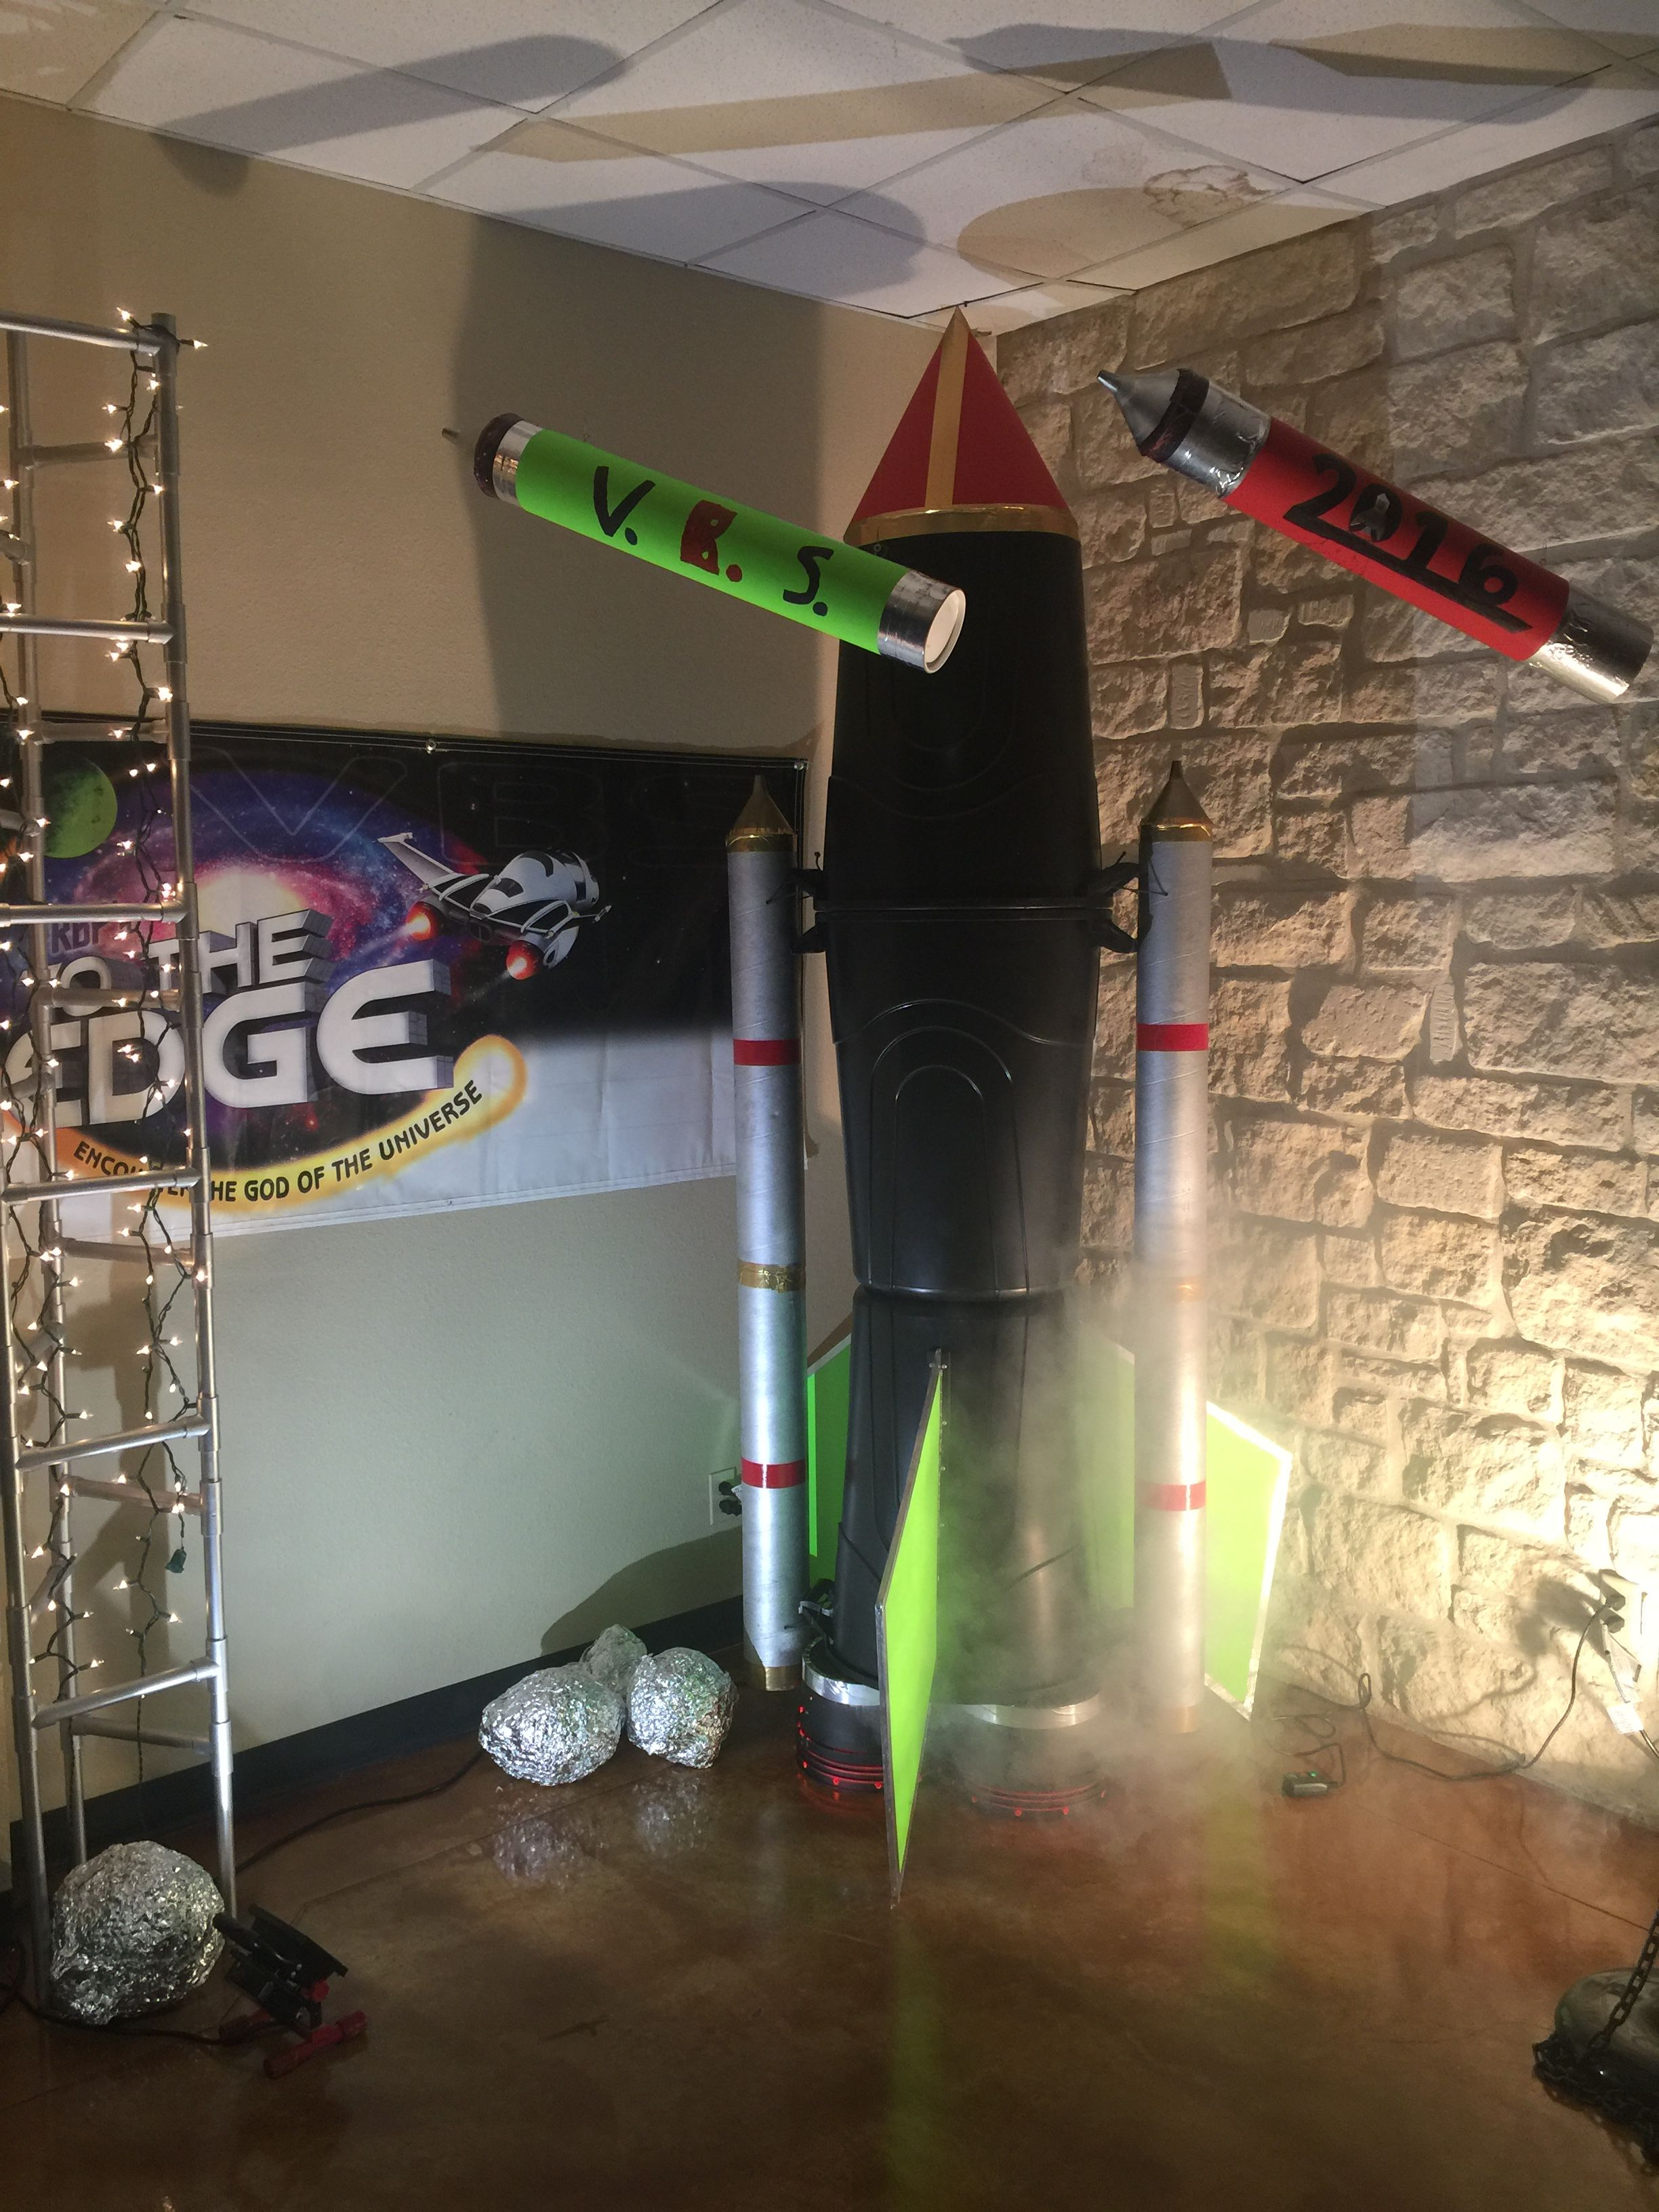 VBS Rocket made from 3 large trash cans cardboard tubes for